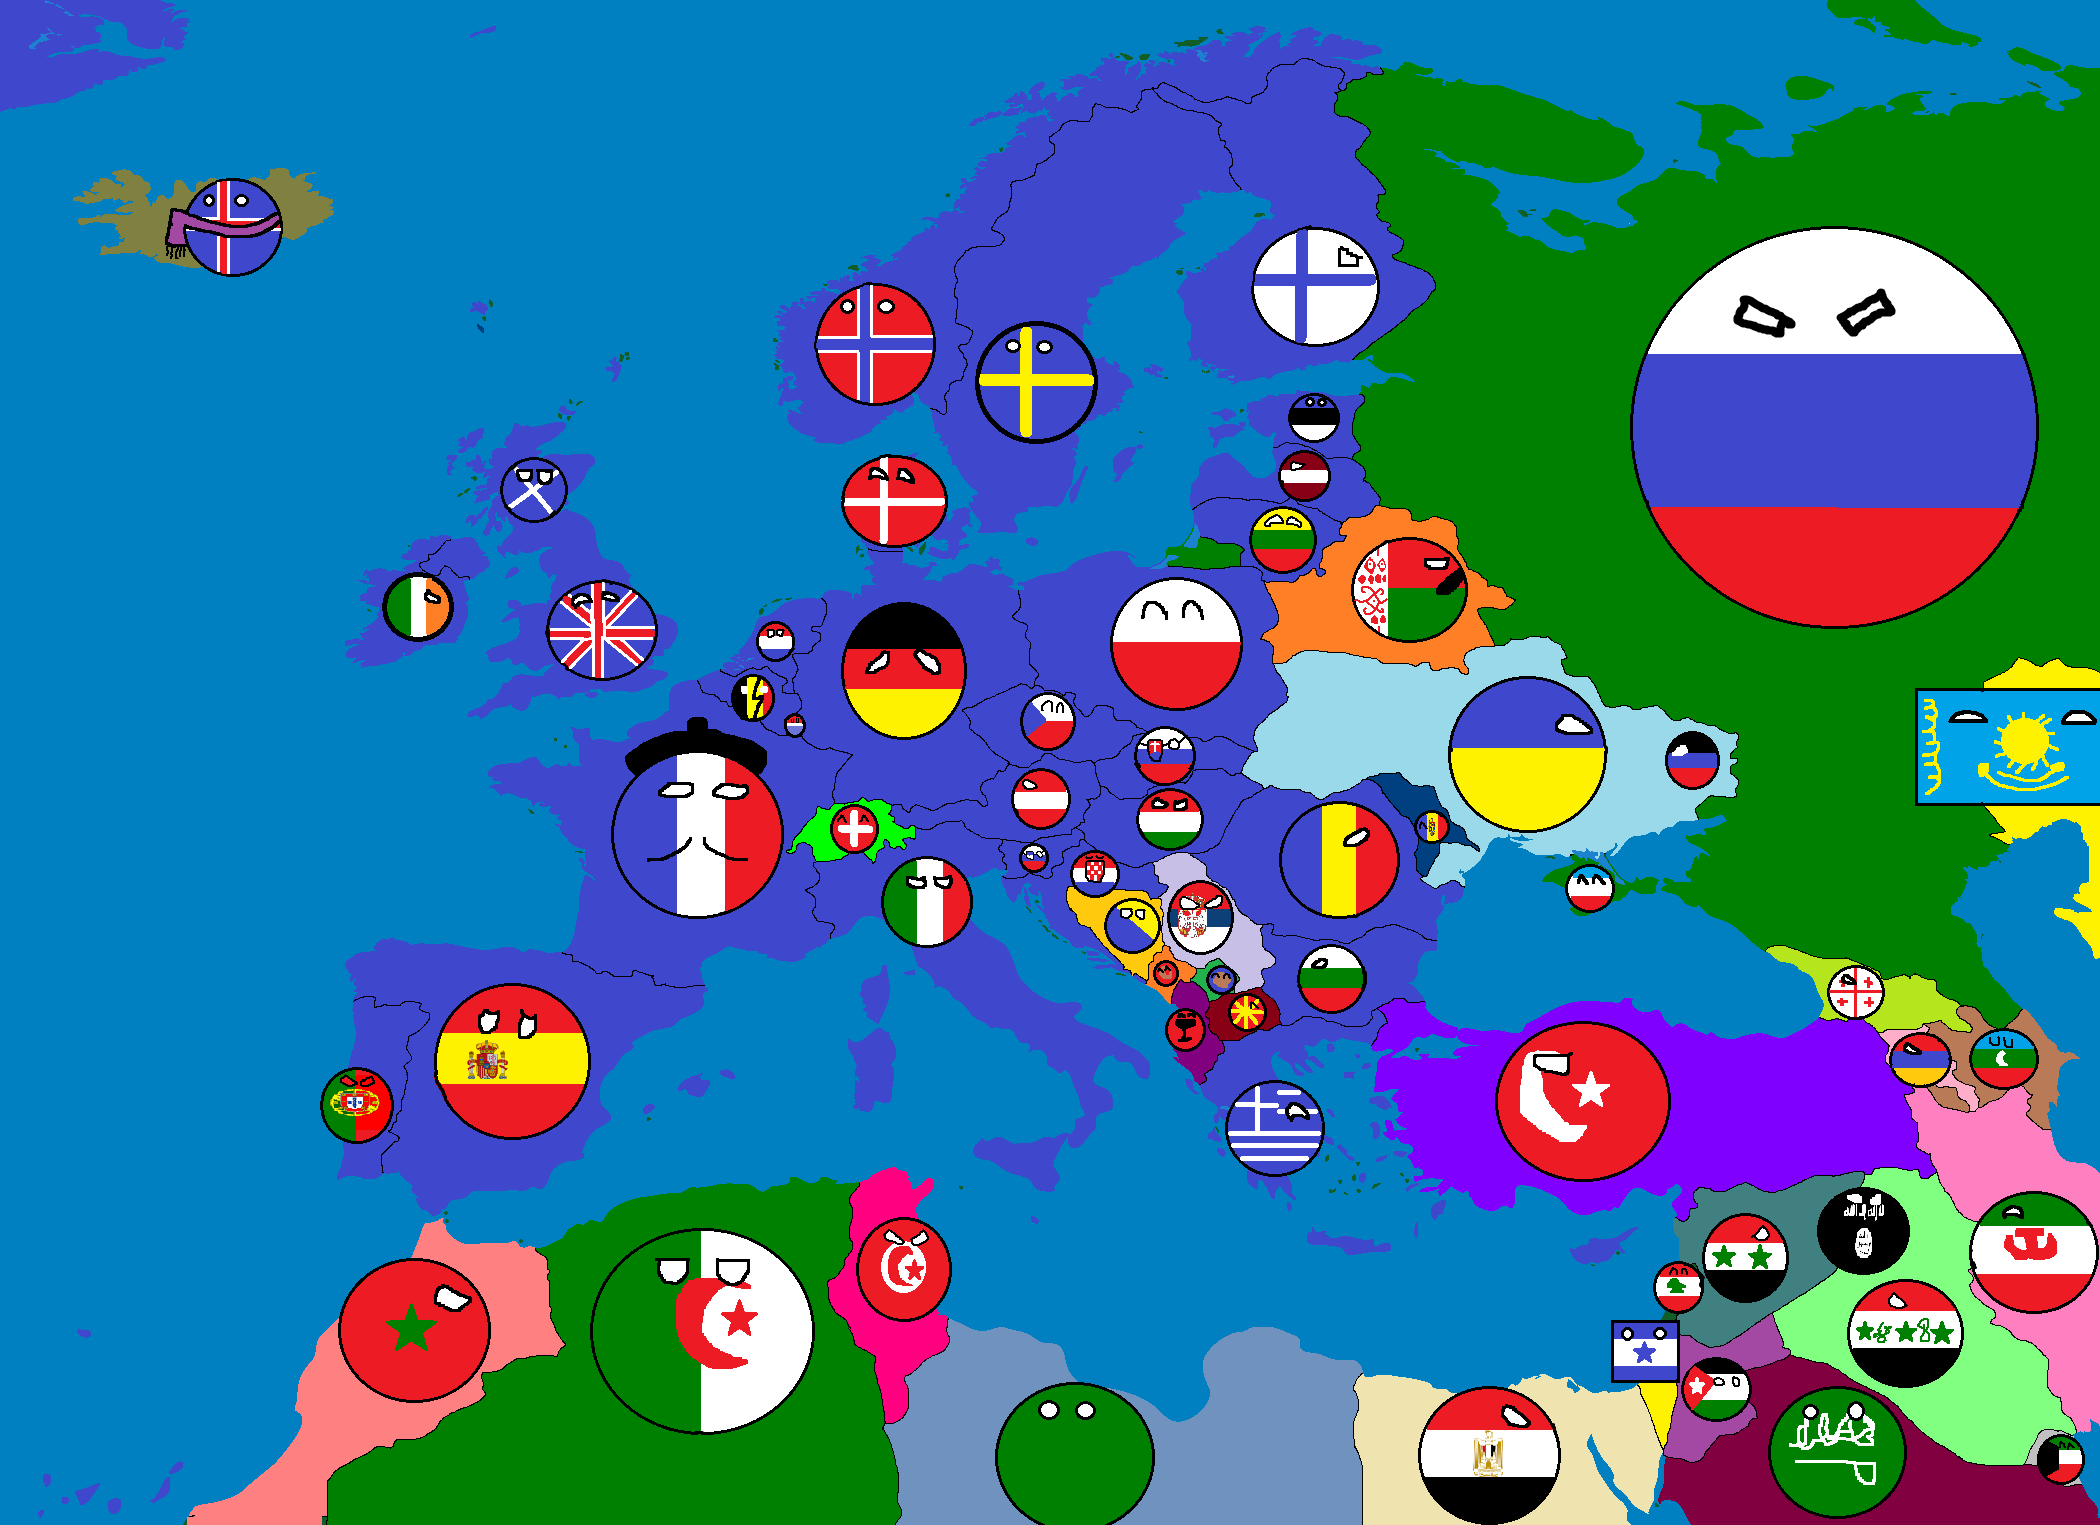 Image Map of Europe in Countryballs